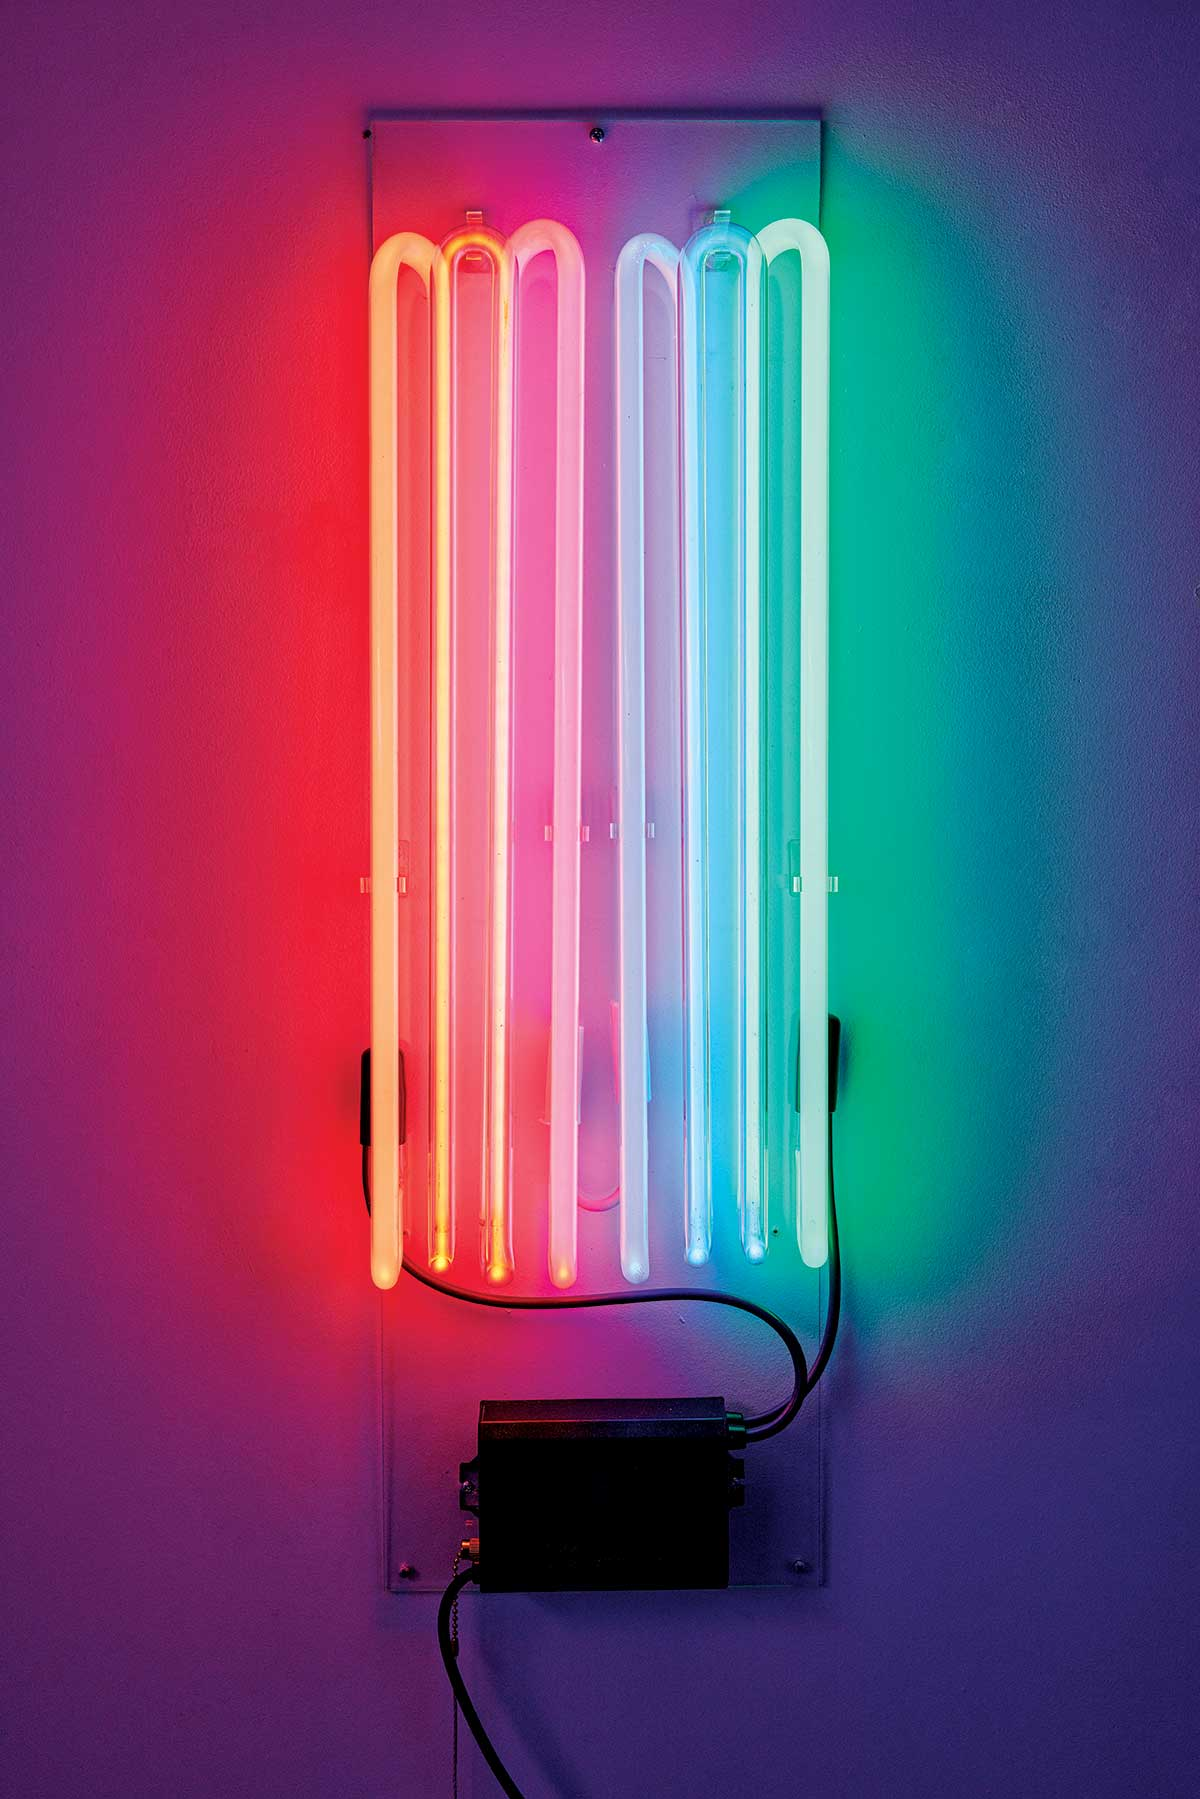 A sampling of neon tube colors in A hop-shaped neon light by Neon Dave's studio